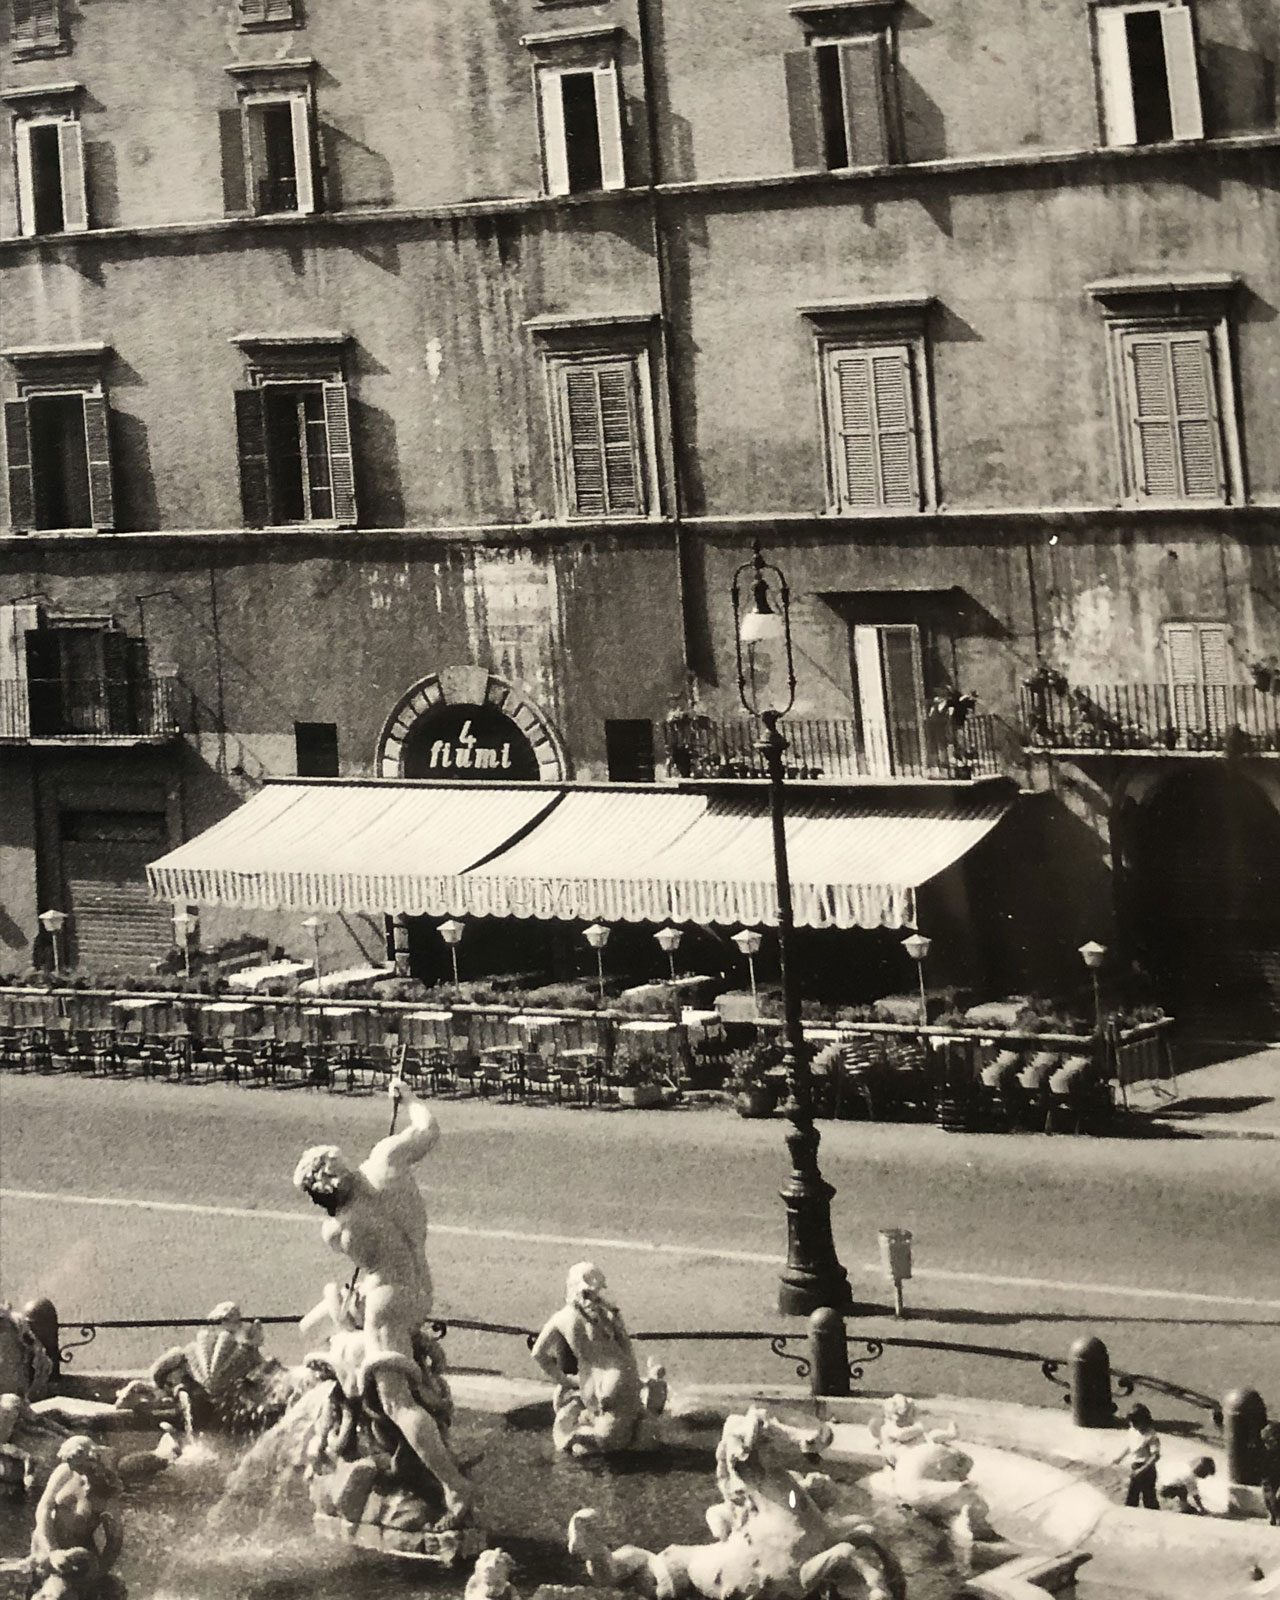 piazza-navona-old-picture